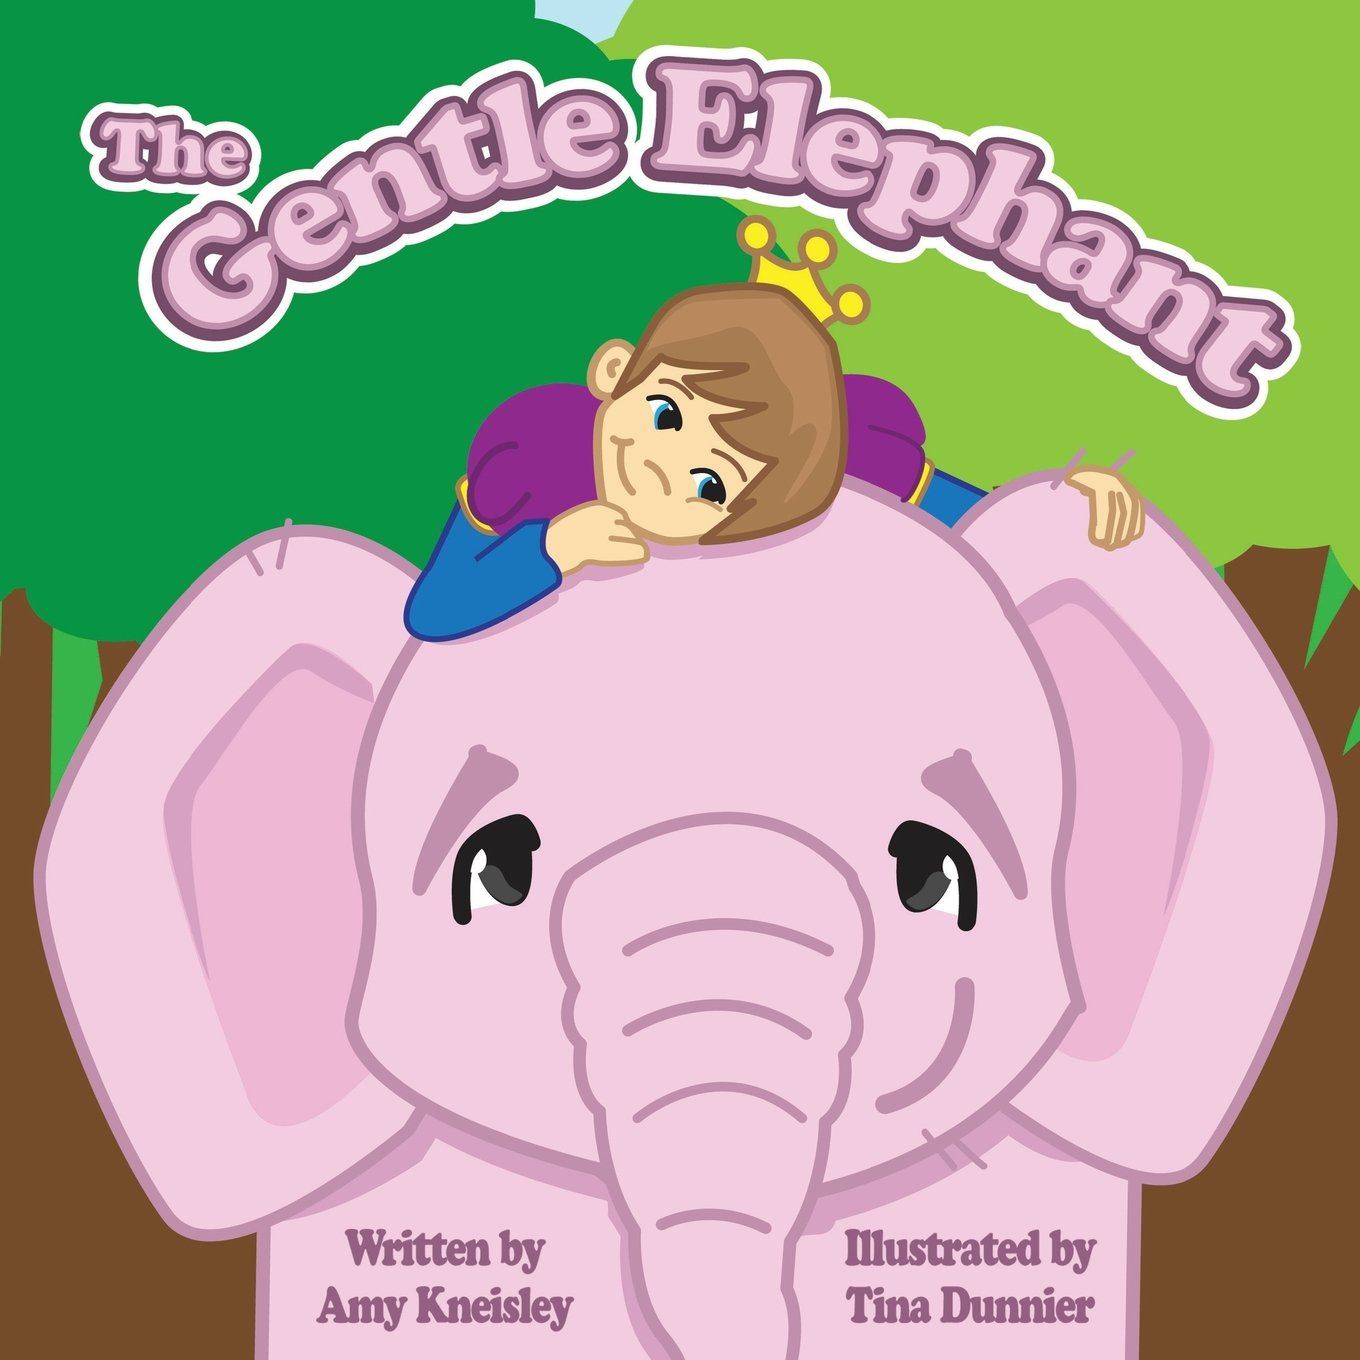 The Gentle Elephant